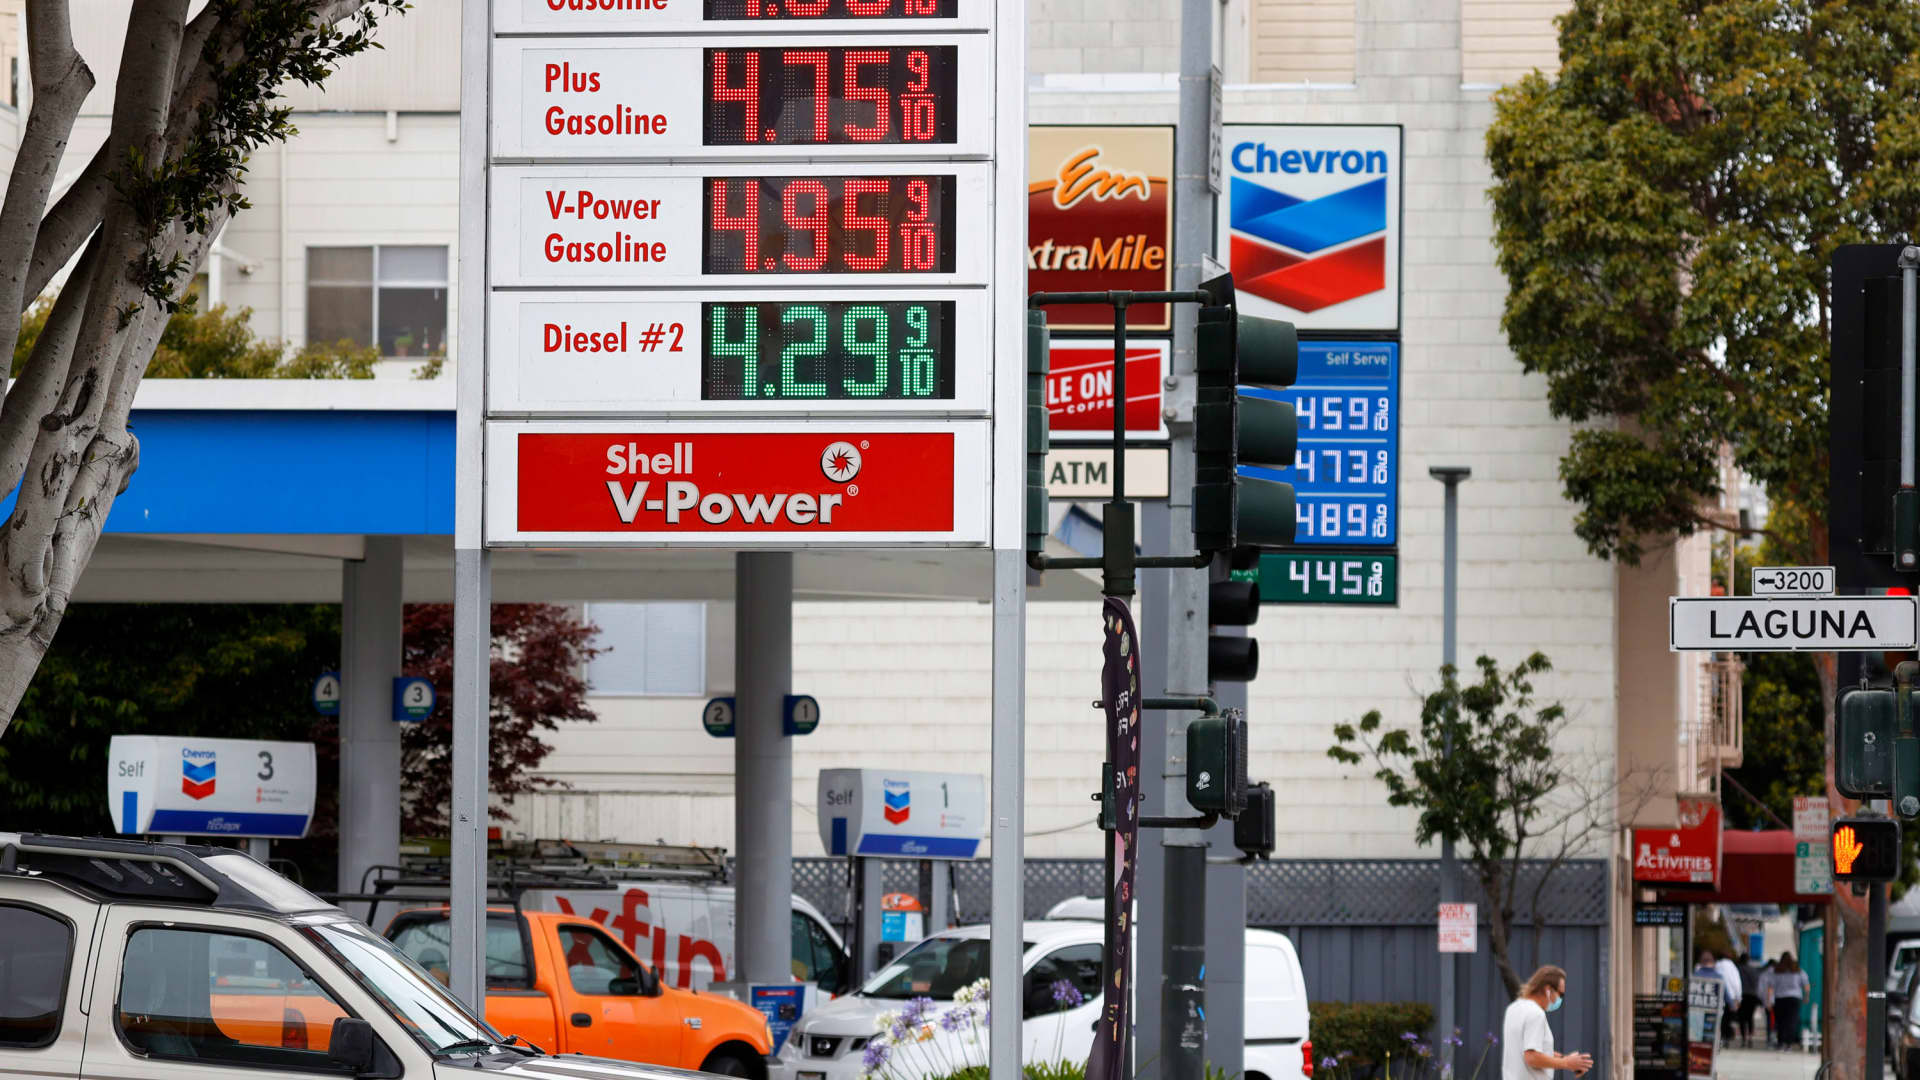 Gas prices nearing $5.00 a gallon are displayed at Chevron and Shell stations on July 12, 2021 in San Francisco, California.